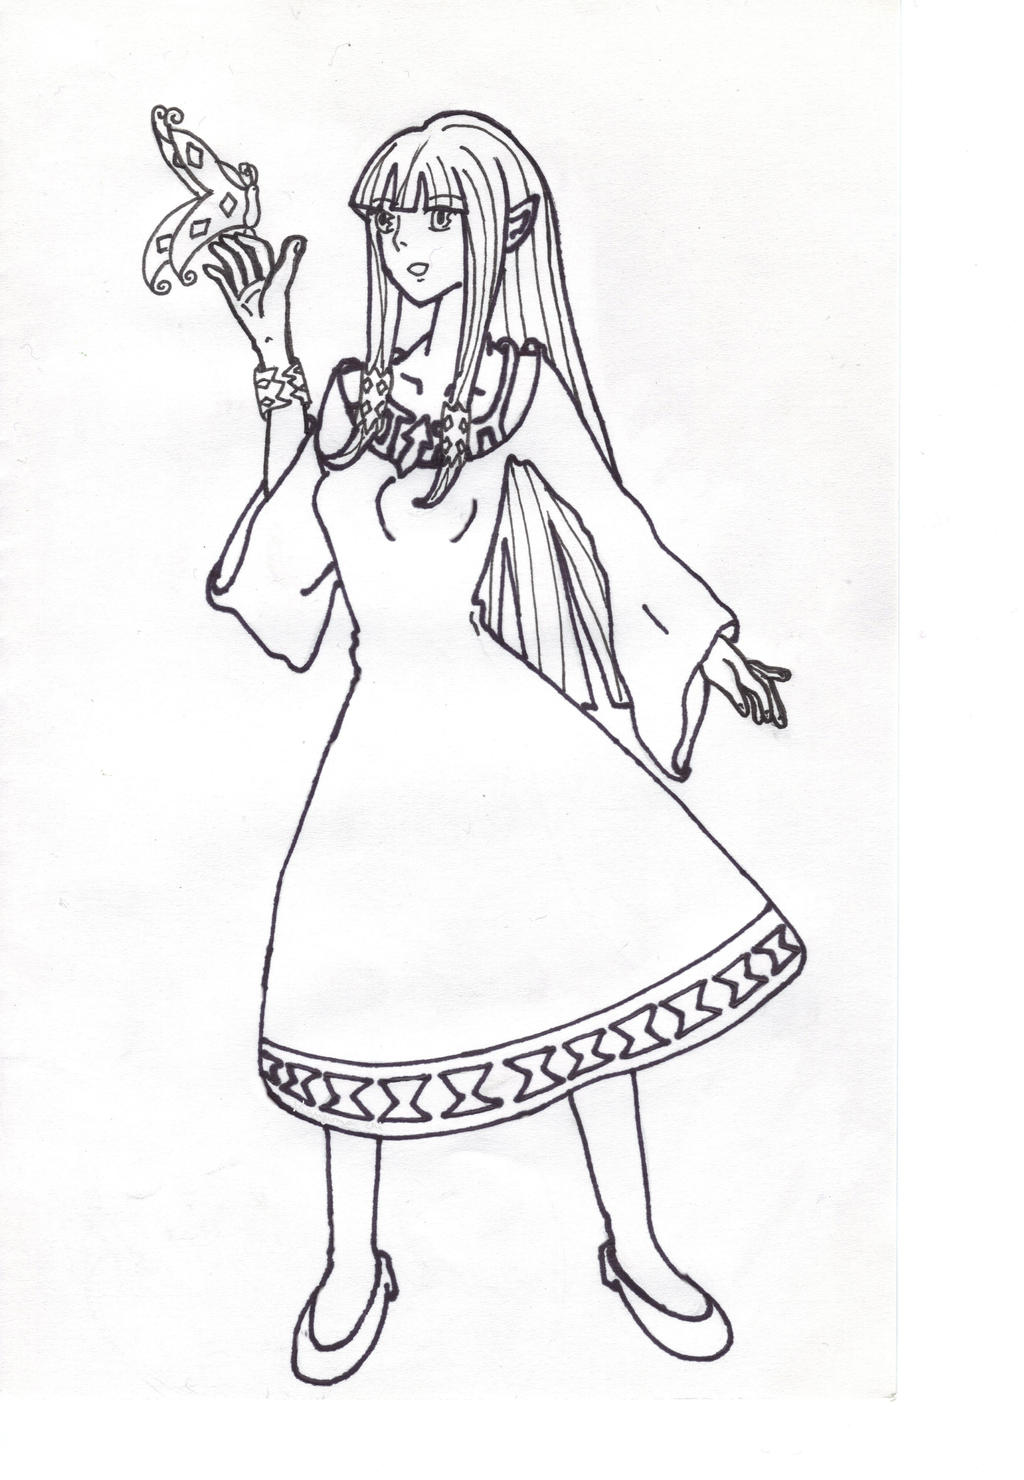 Zelda sky ward sword free colouring pages for The legend of zelda coloring pages